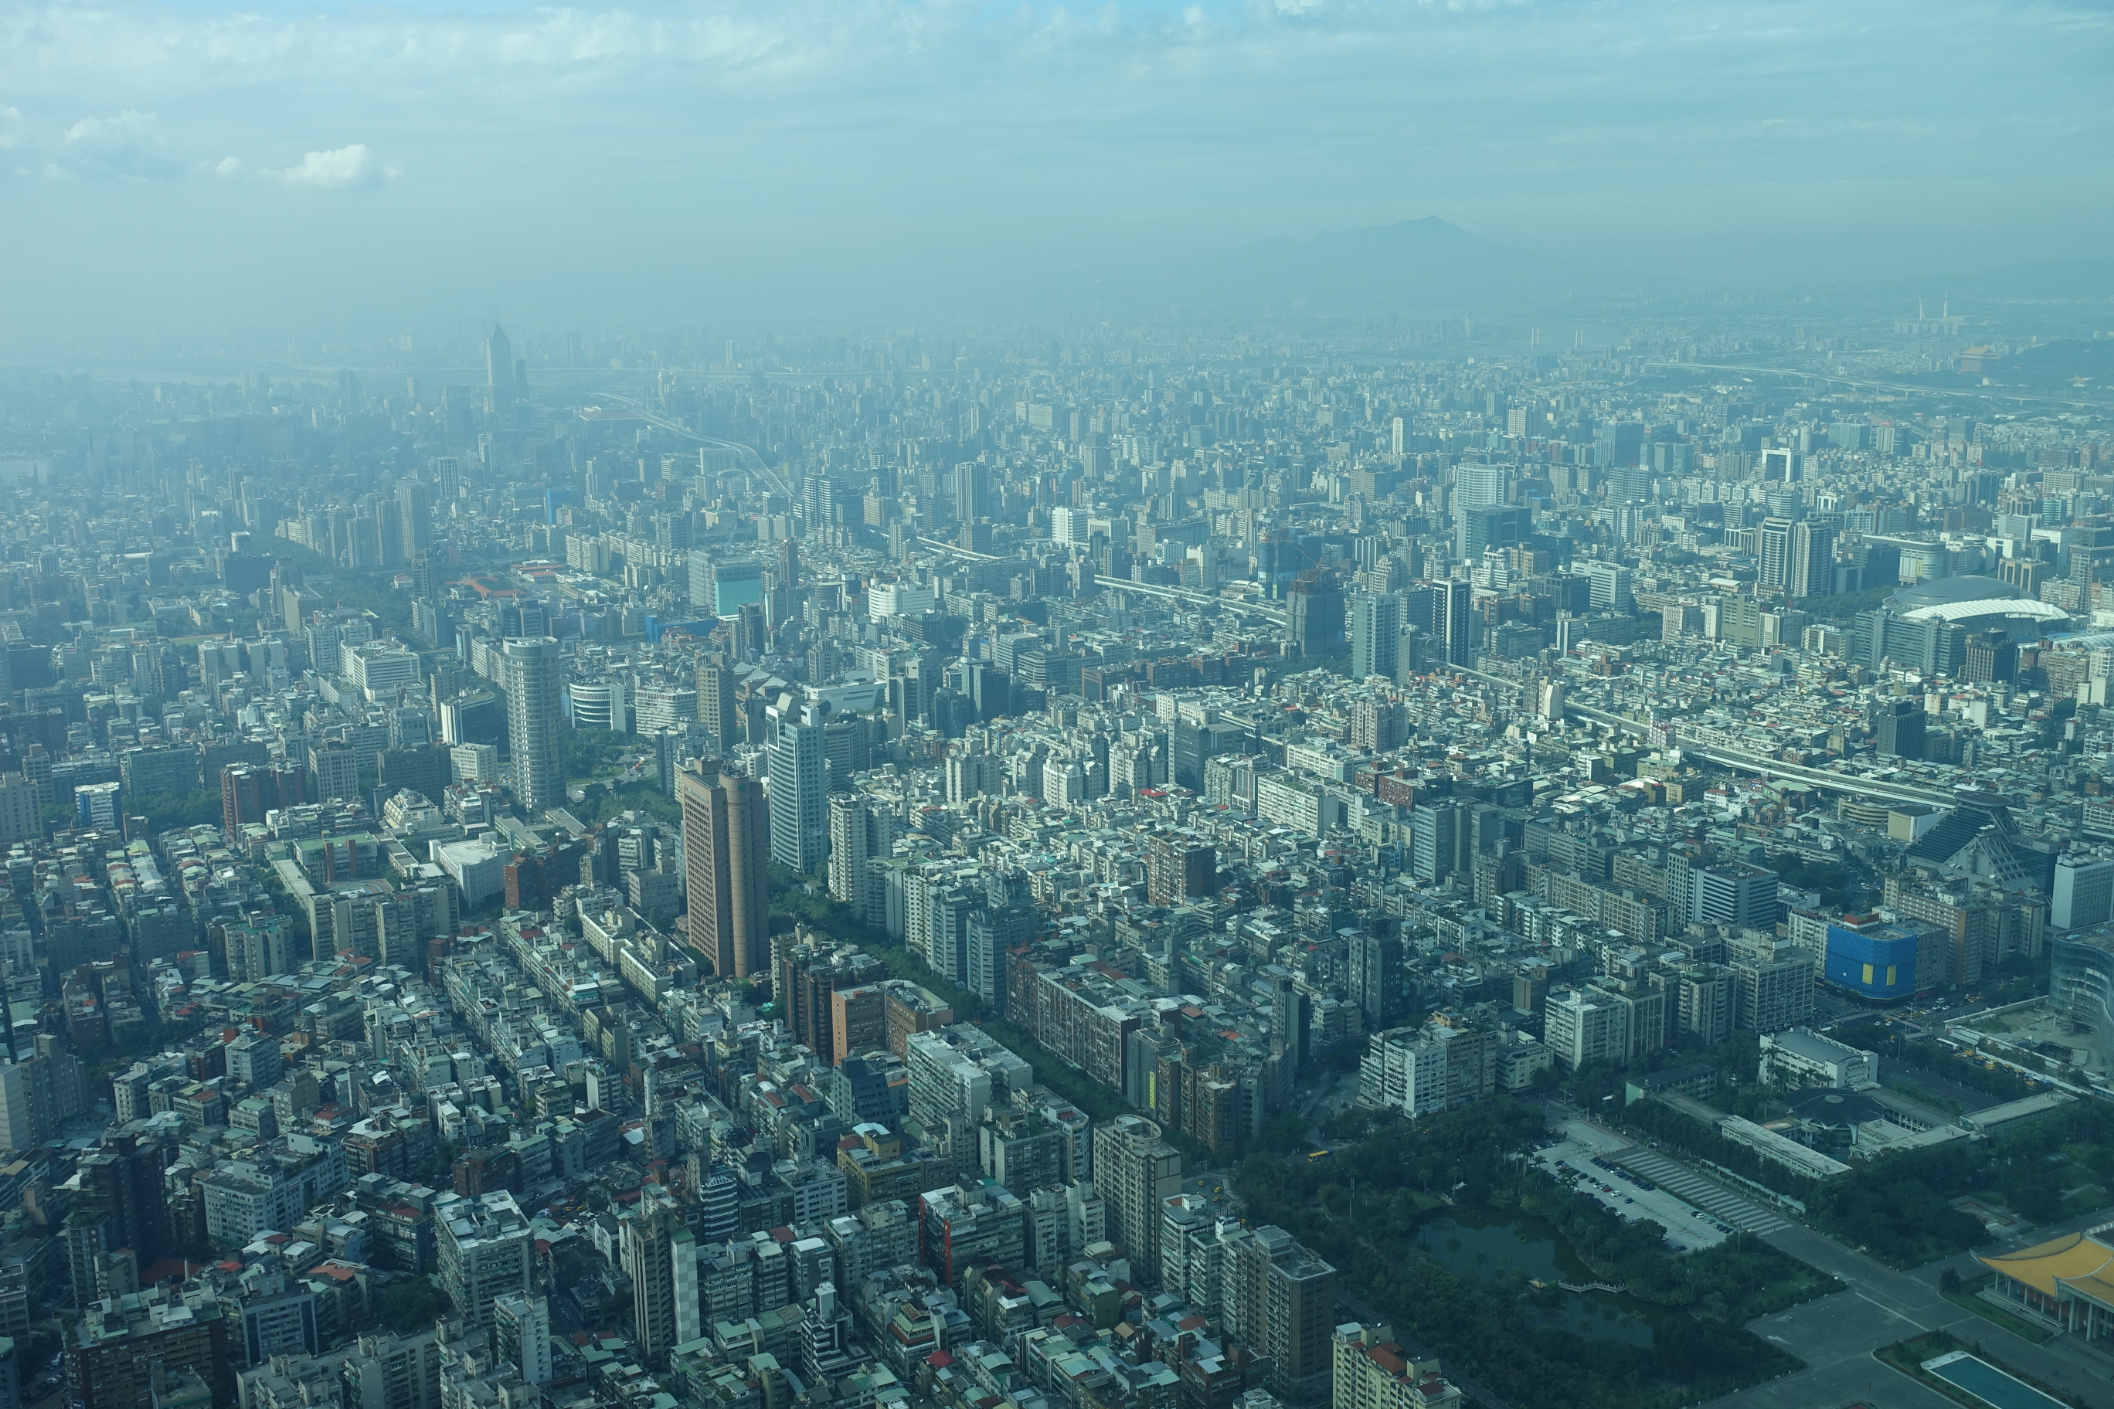 We´d had an enjoyable couple of days exploring Taipei; but keen to get out of the metropolis